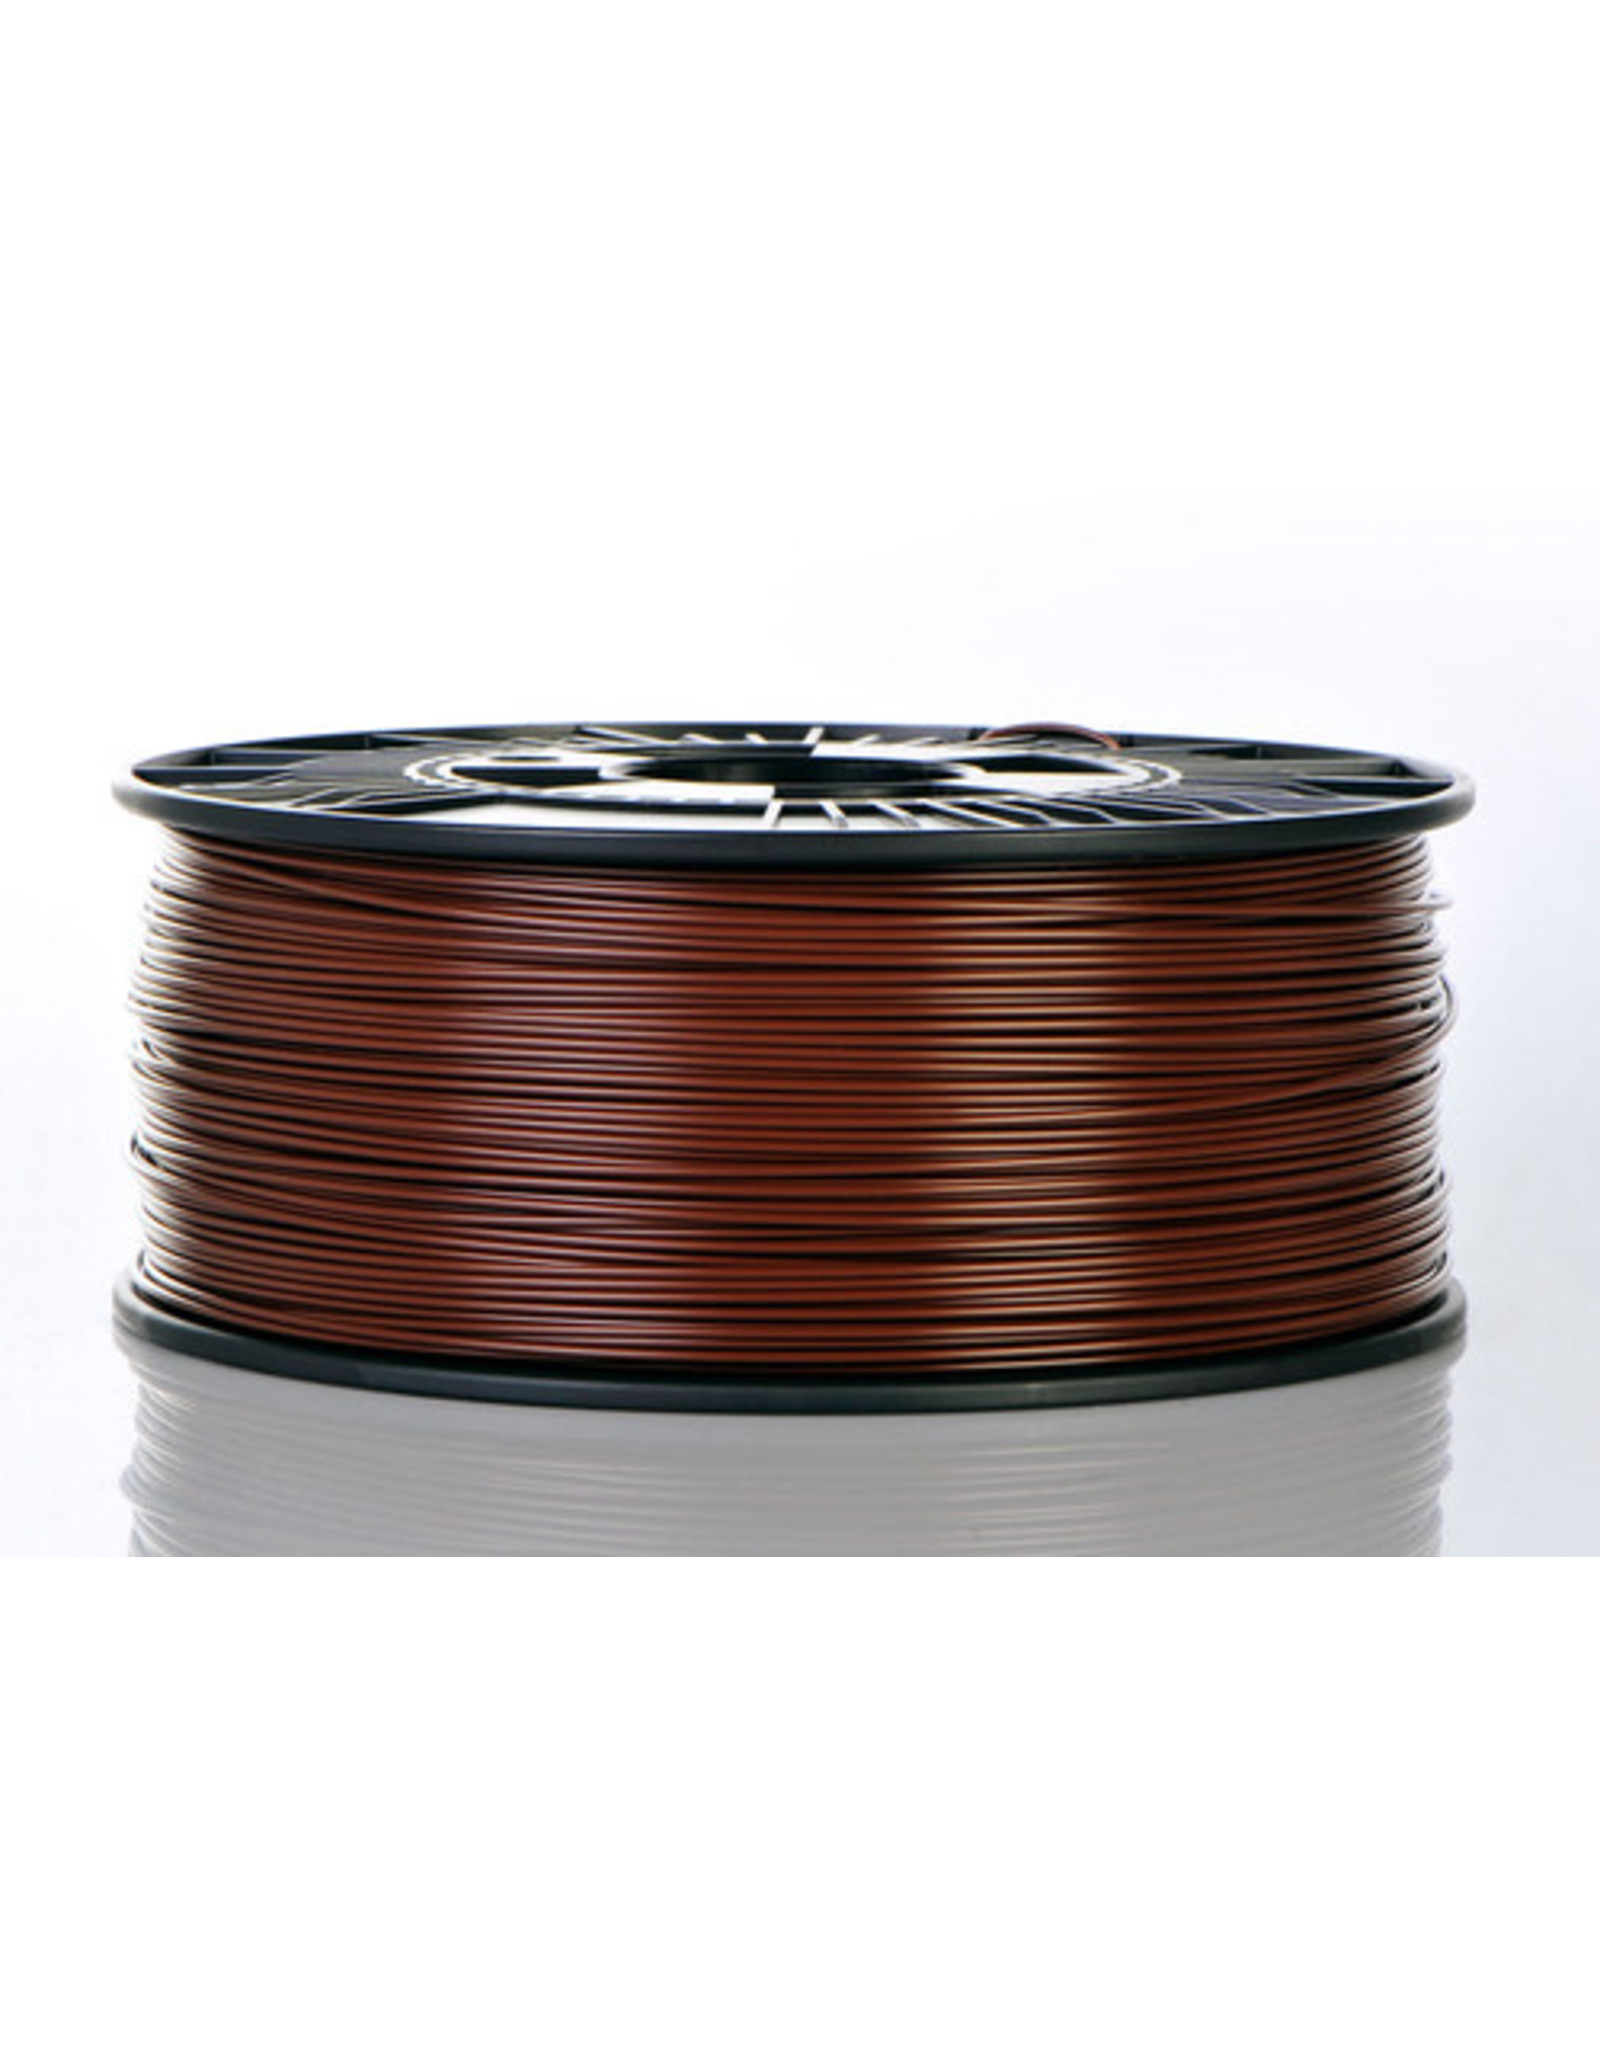 Material4Print ABS Choco bruin 1.75mm 1kg